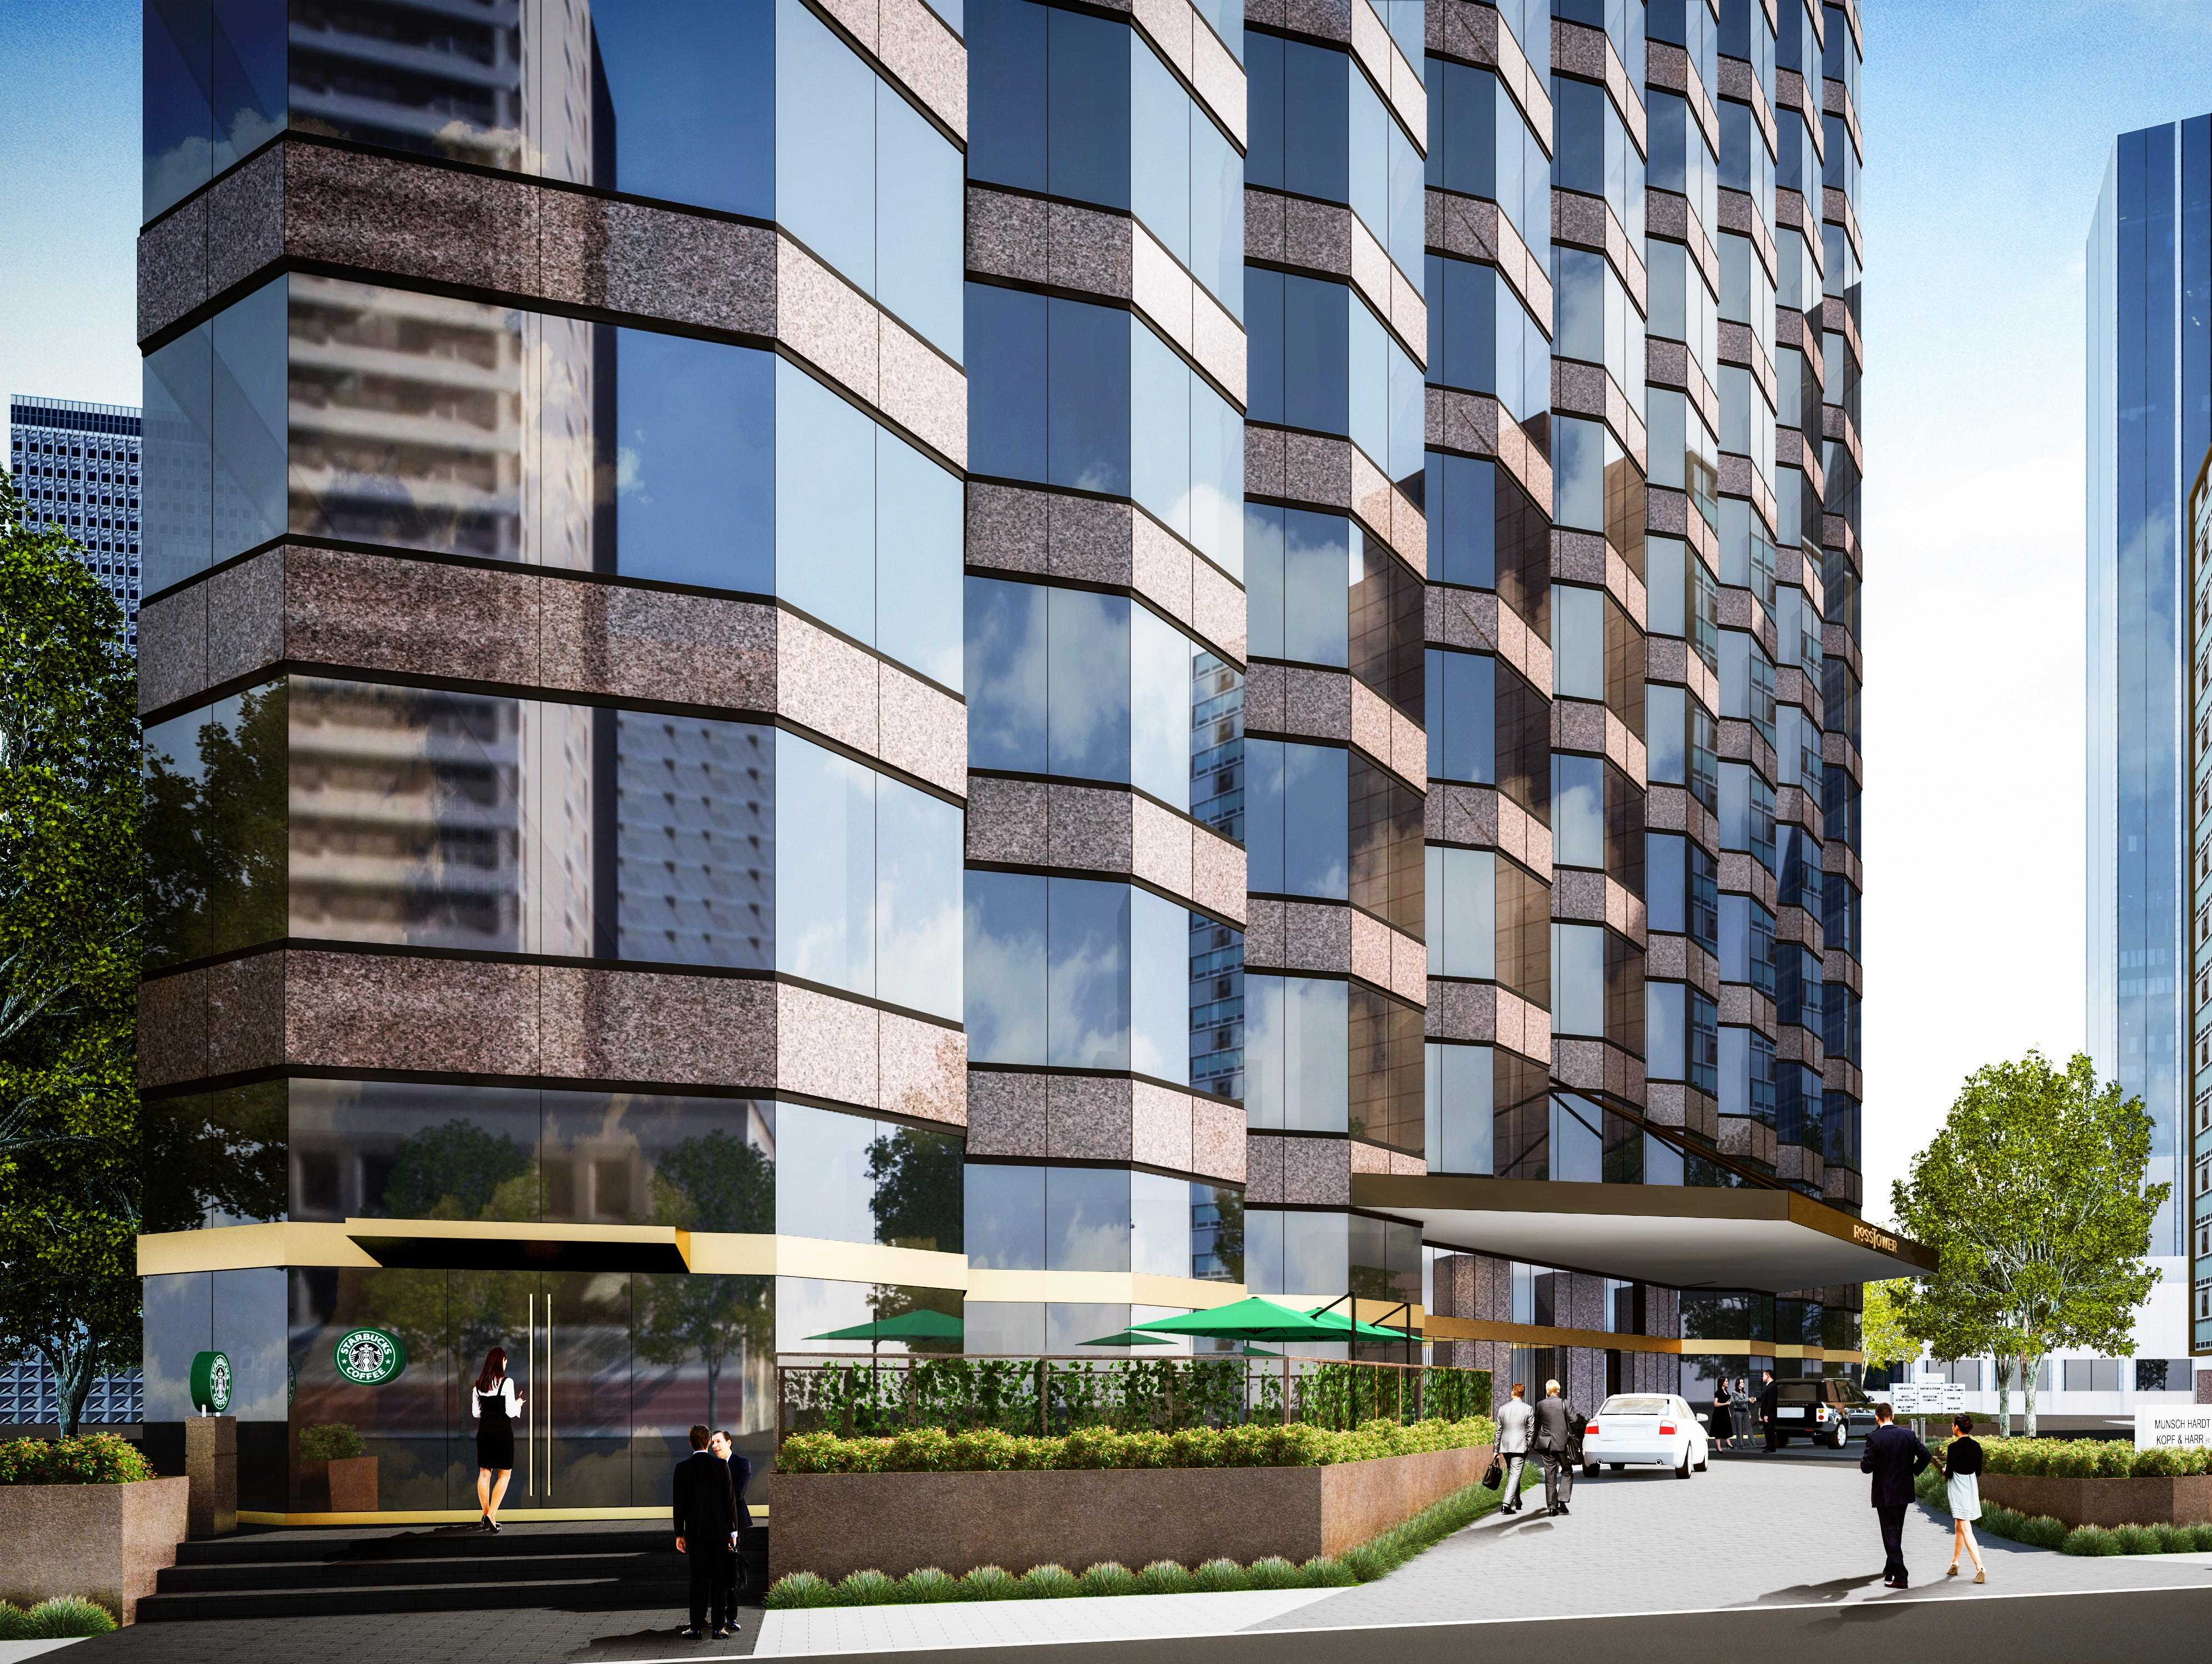 Rendering of improvements at Ross Tower in Dallas